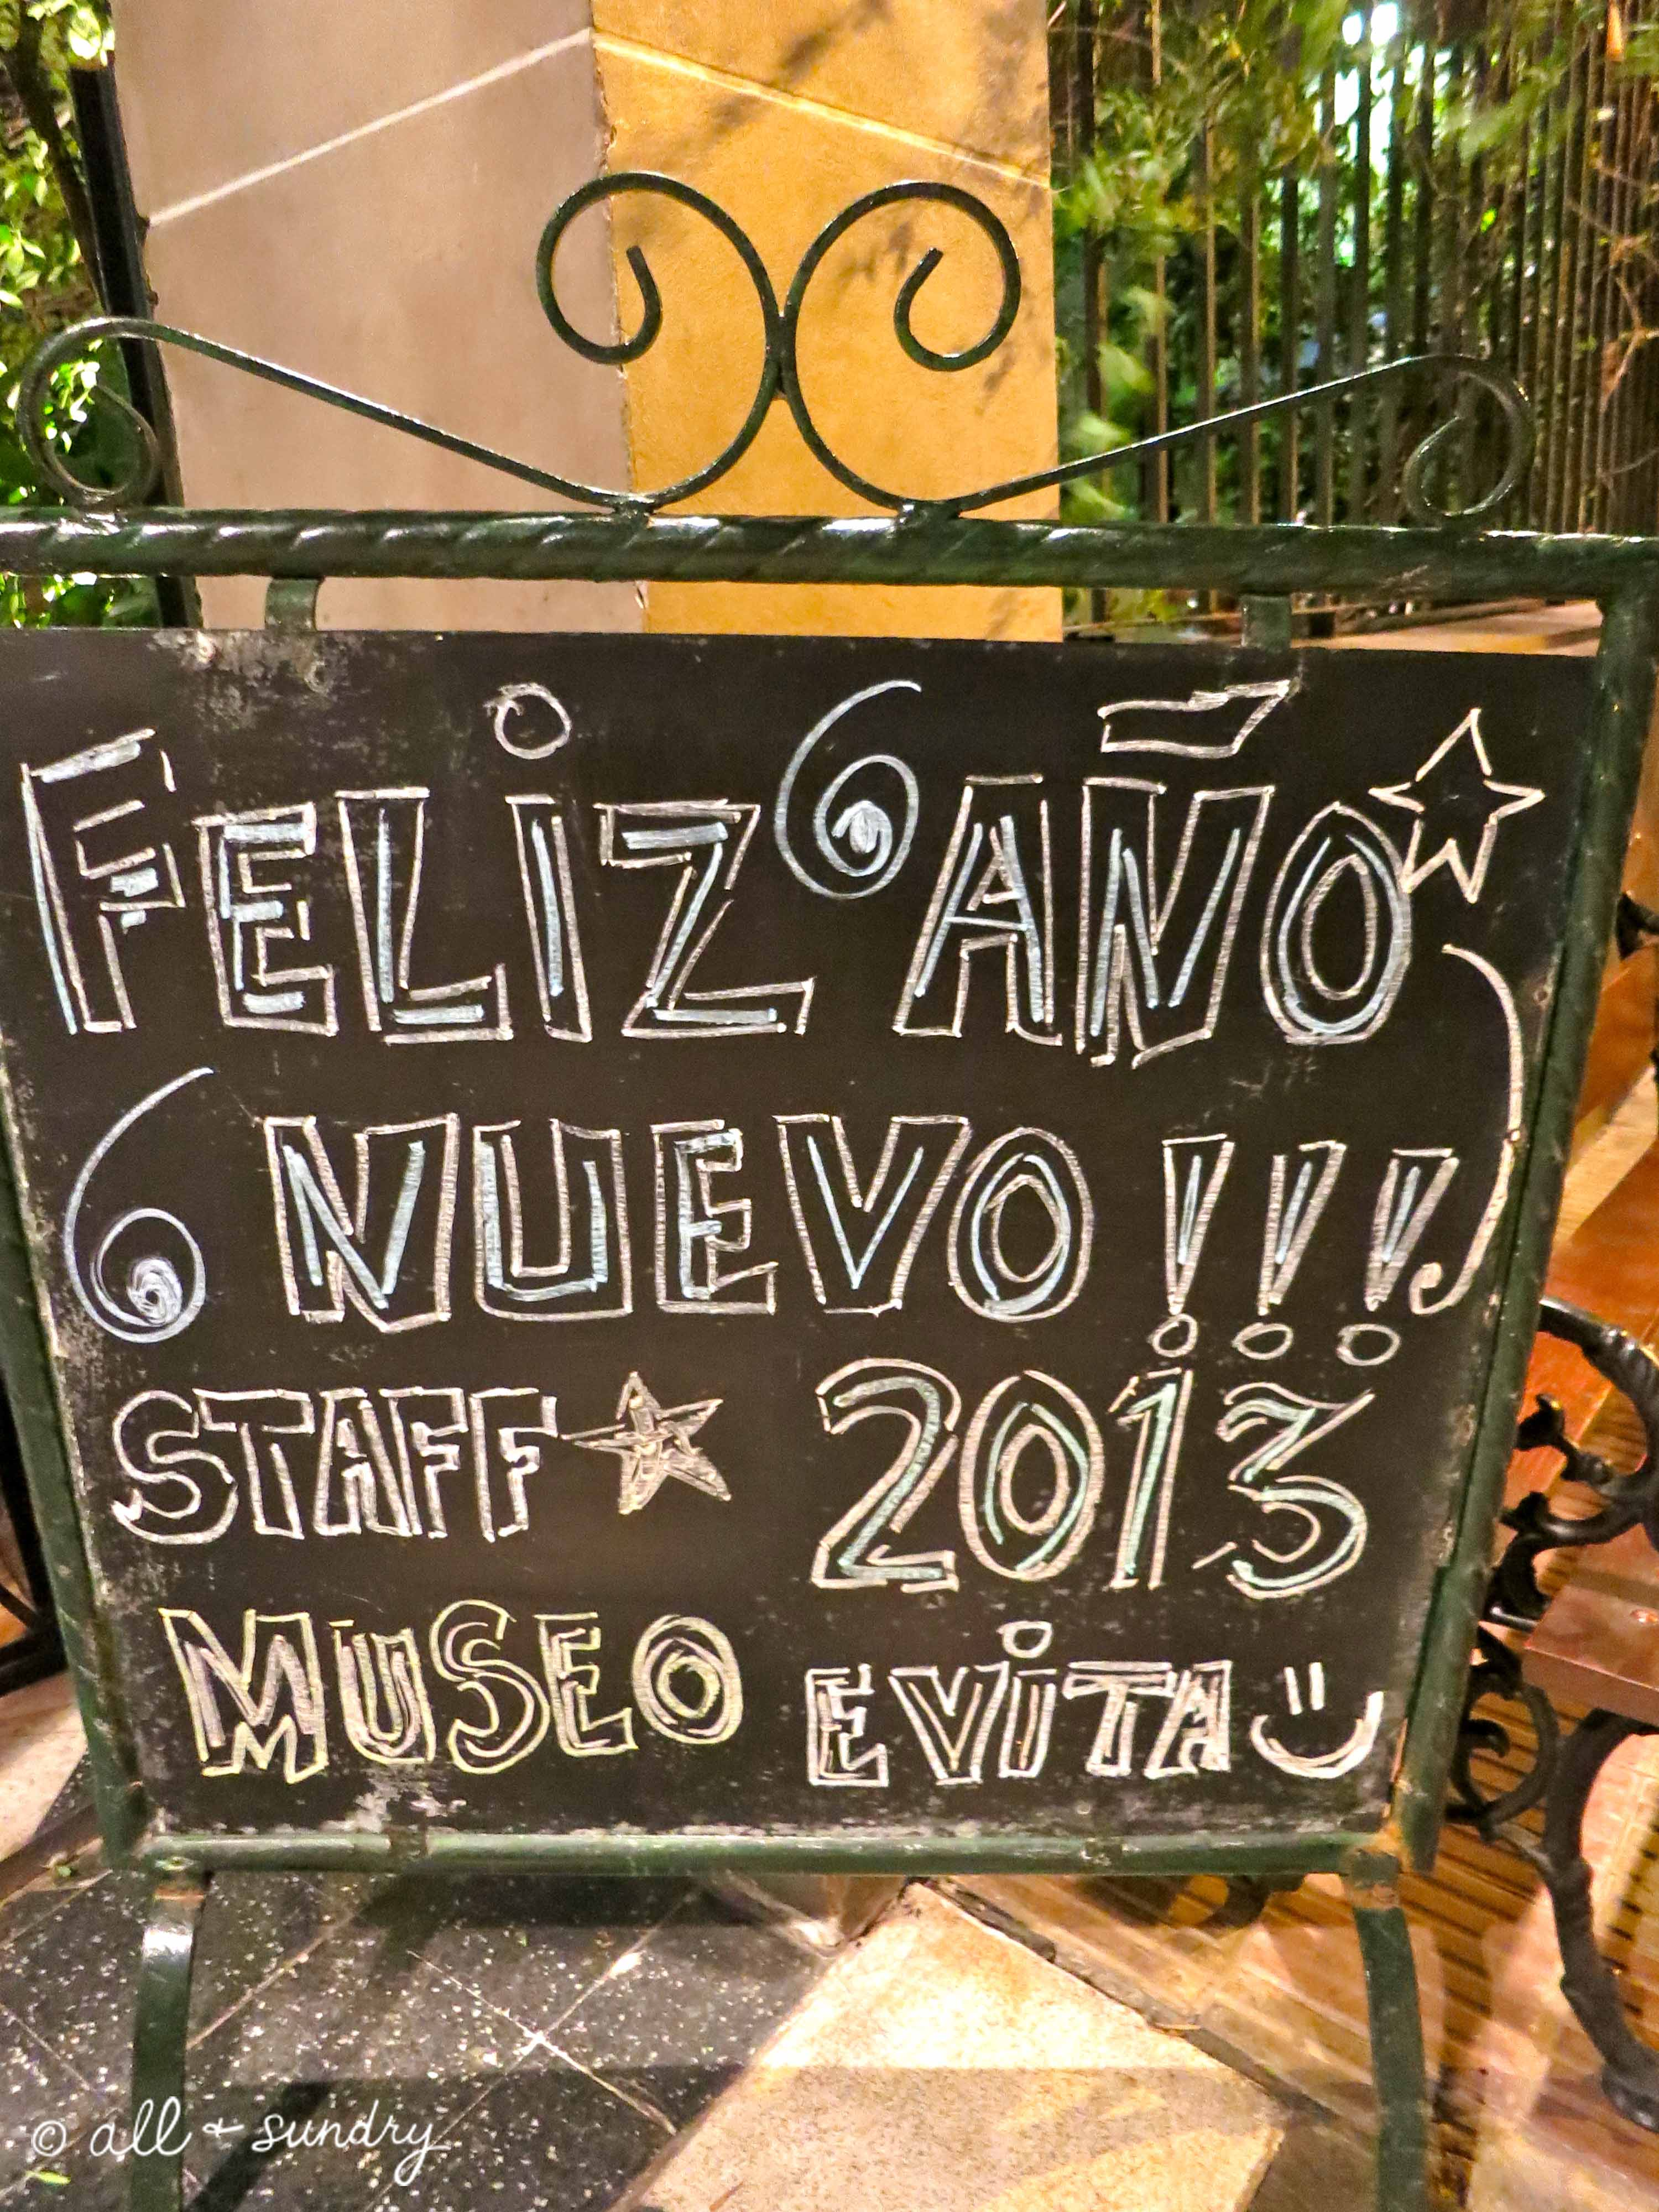 New Year's Eve Evita Museo